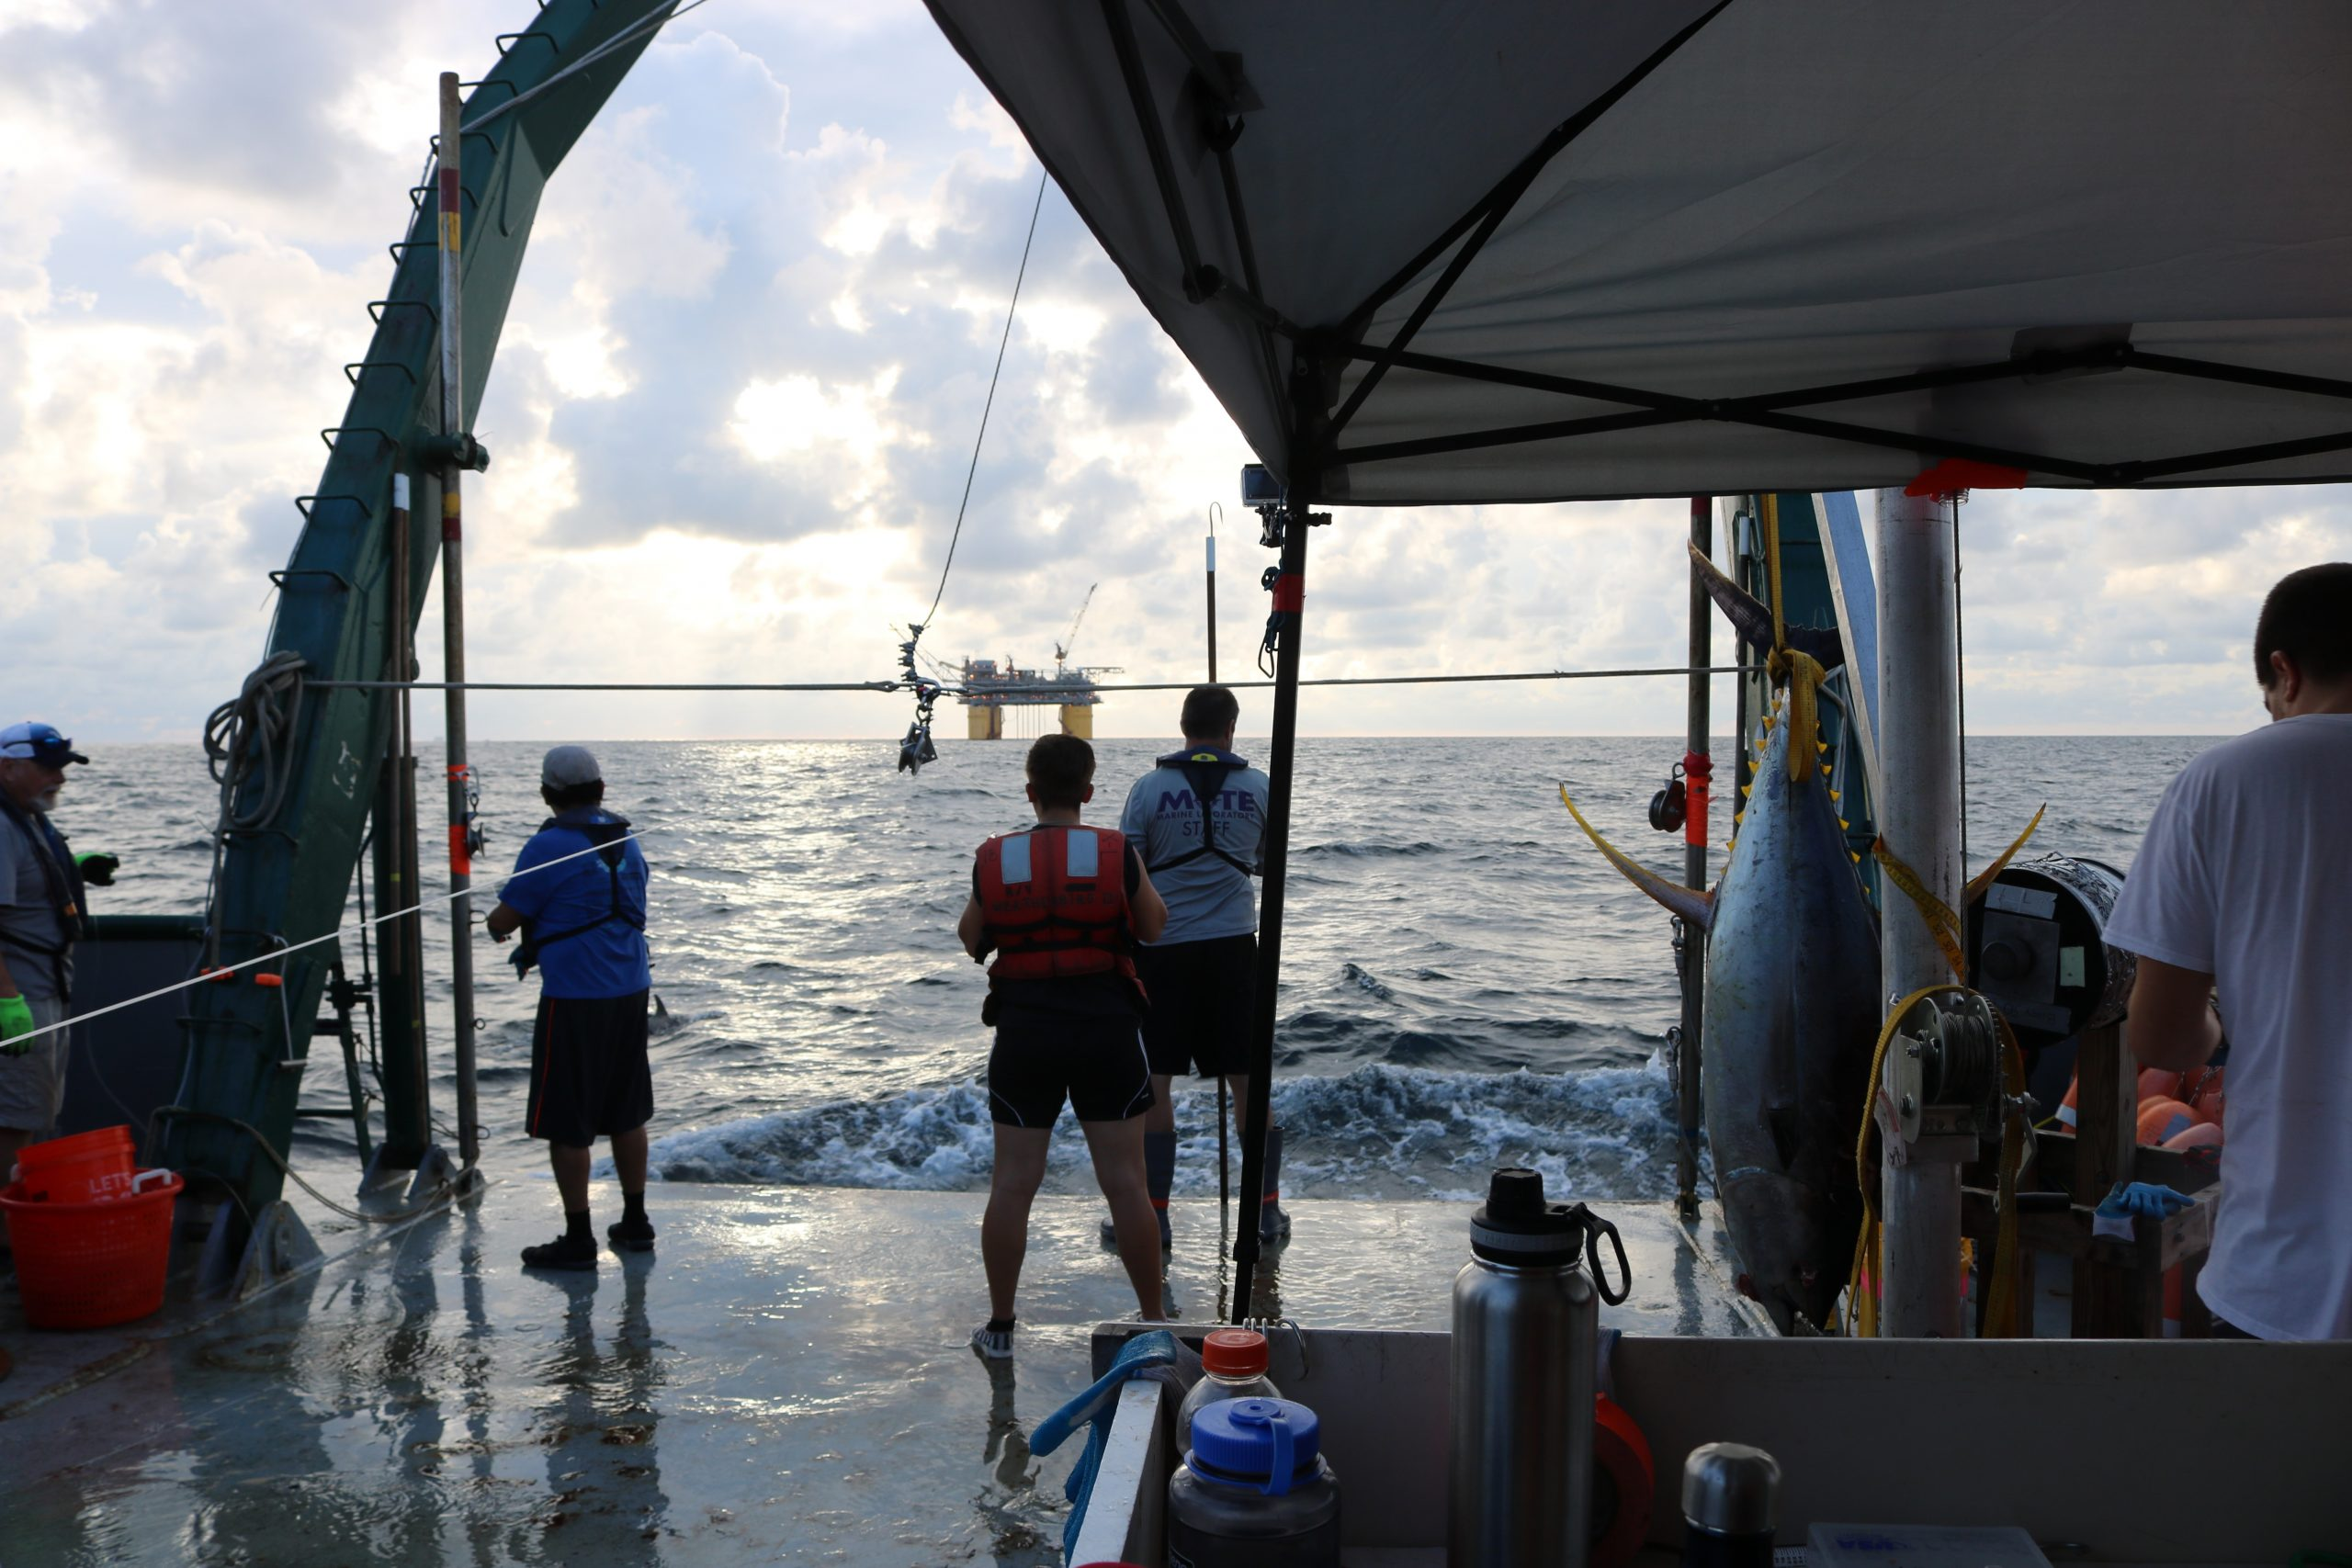 6c. Fish surveys led by the USF College of Marine Science since the Deepwater Horizon Oil Spill have taken place throughout the Gulf of Mexico, including regions with high densities of oil and gas infrastructure.